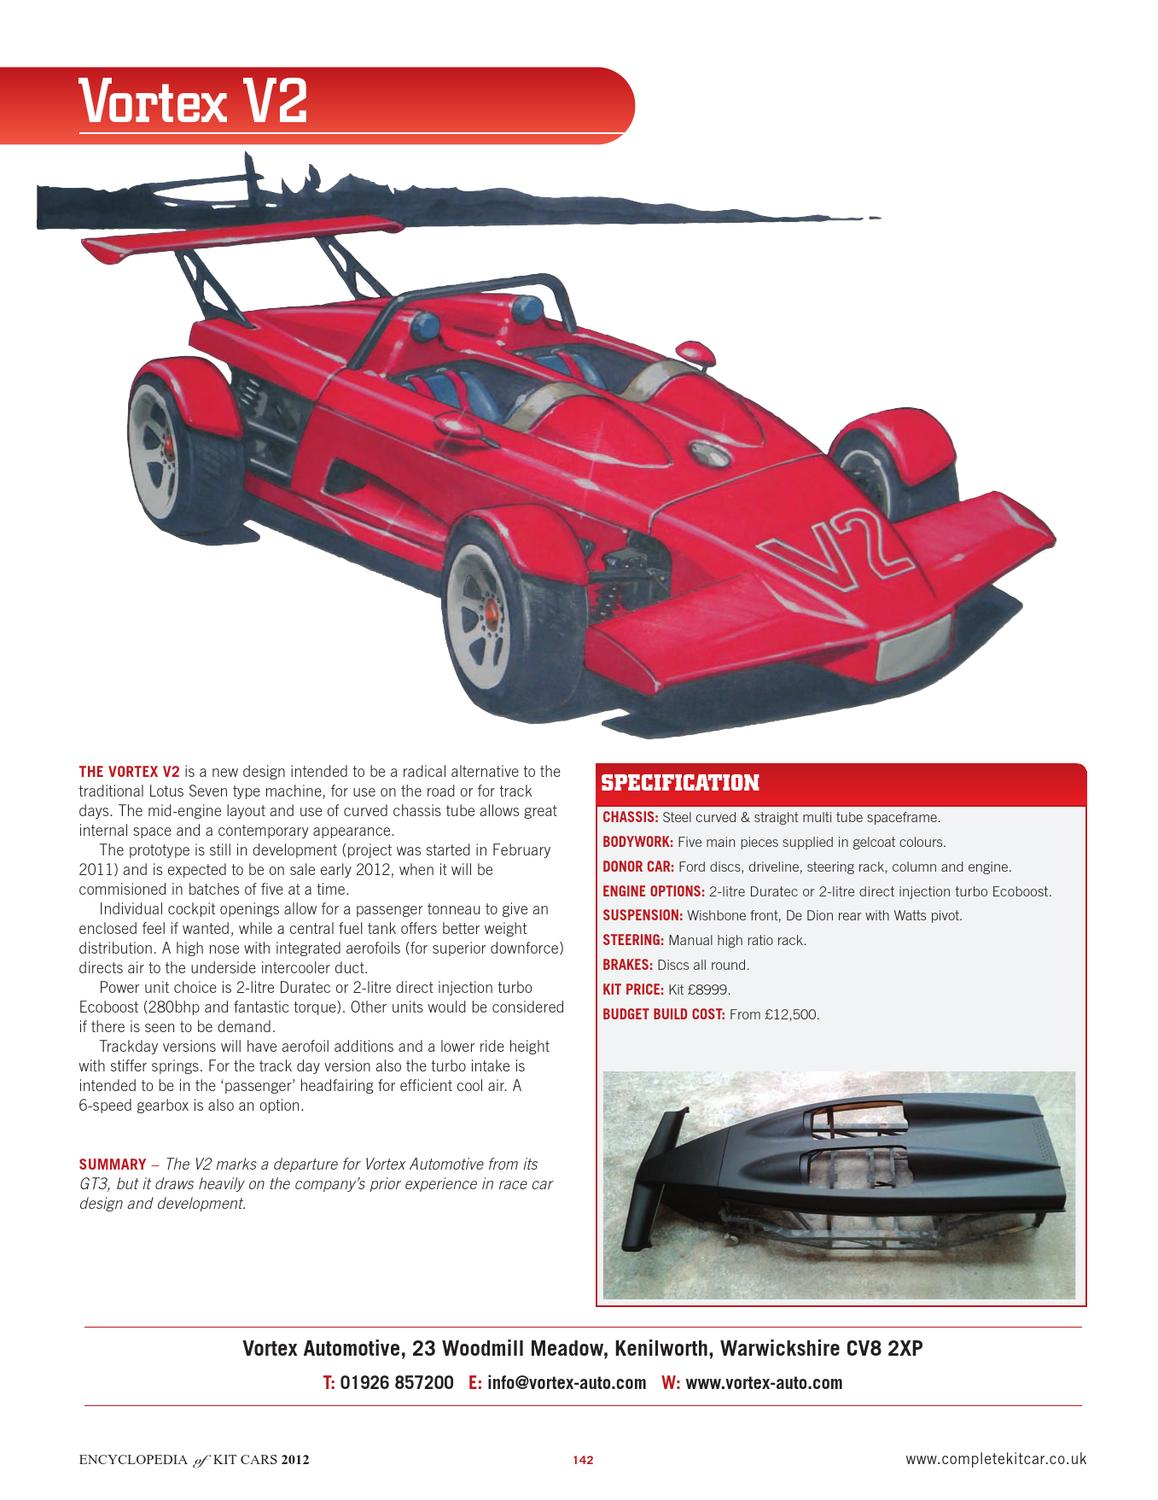 Encyclopedia of Kit Cars